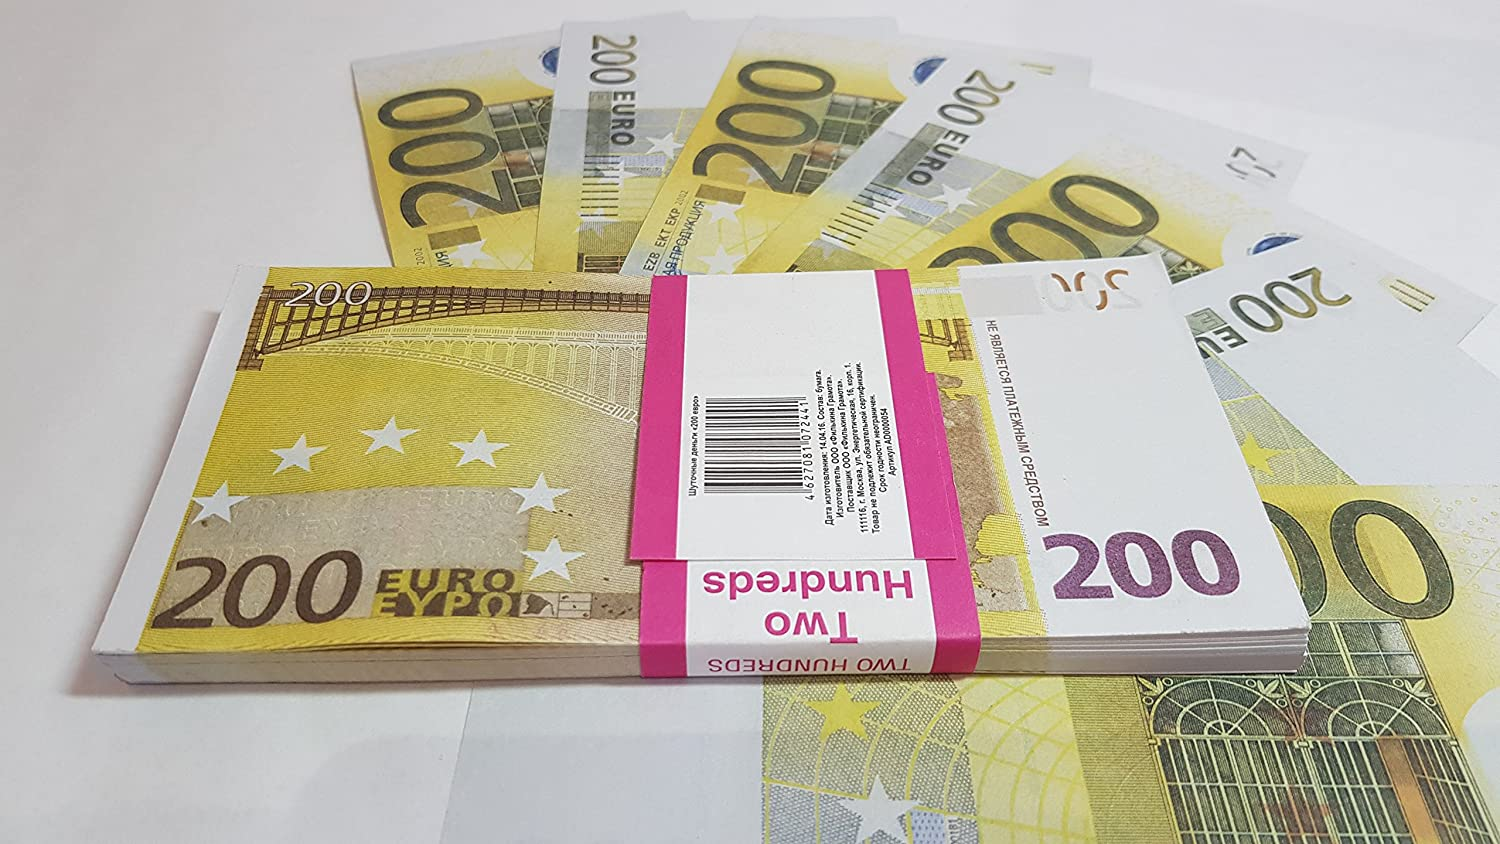 and in In our store you can find a wide range of money printed products with a unique style and design Comic money can be used as a gift Can be used in various Board games Souvenir banknotes look realistic monopoly, cards suitable for pranks friends